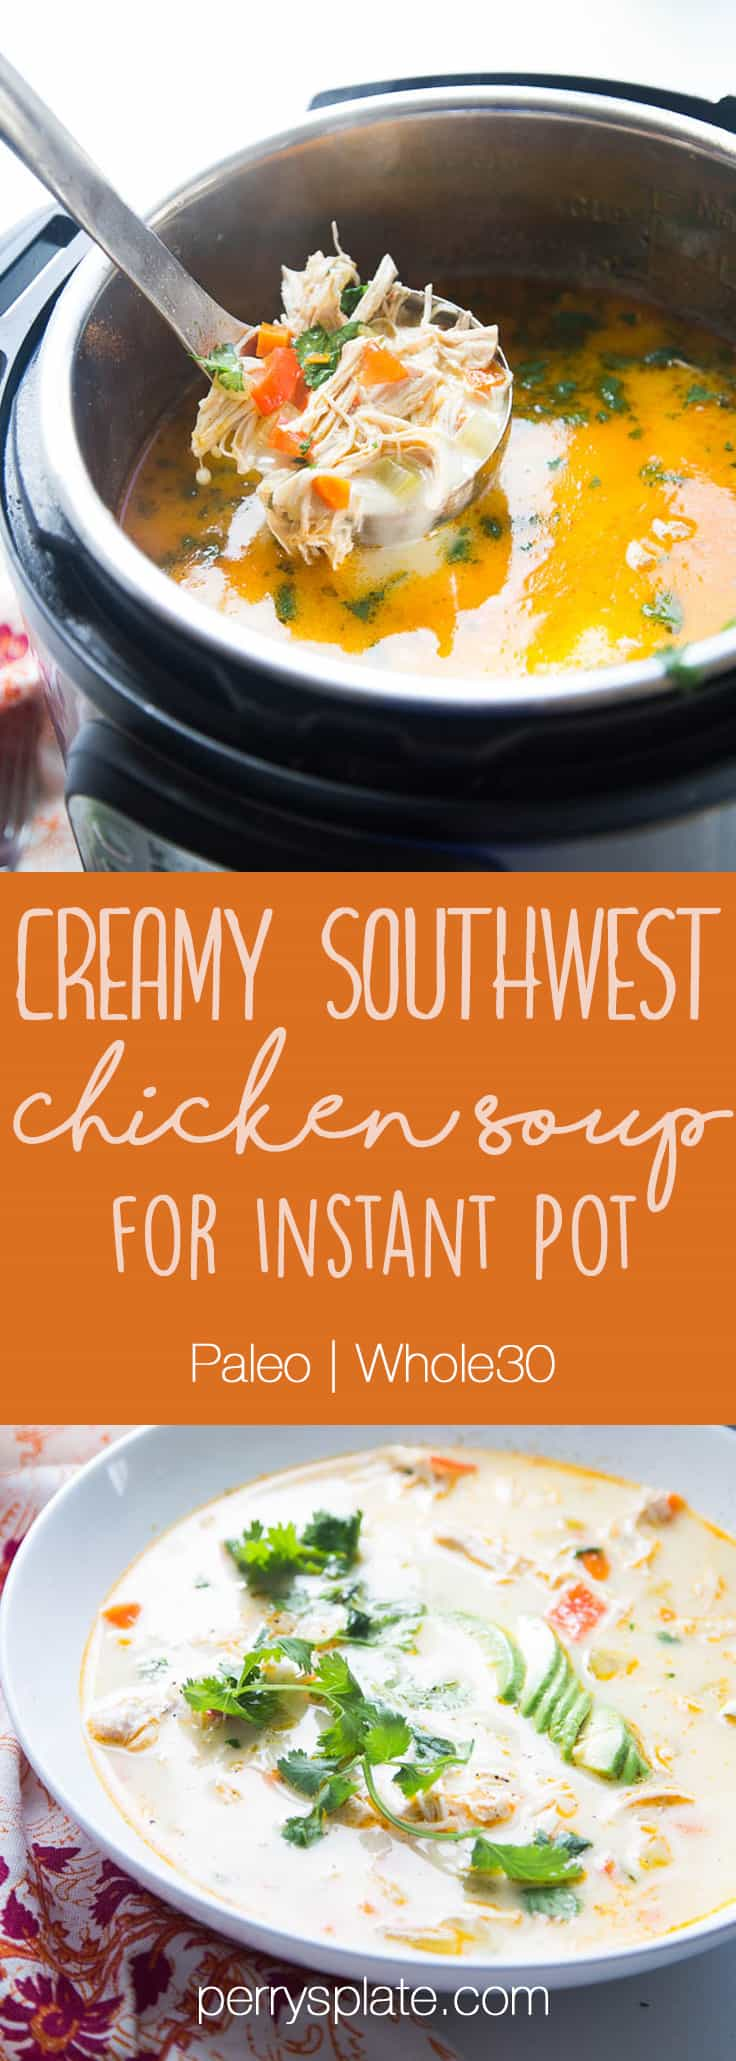 Creamy Southwest Chicken Soup for Instant Pot is paleo, Whole30, and low-carb friendly! And super easy to whip up on a weeknight in your Instant Pot. | perrysplate.com #instantpot #chickensoup